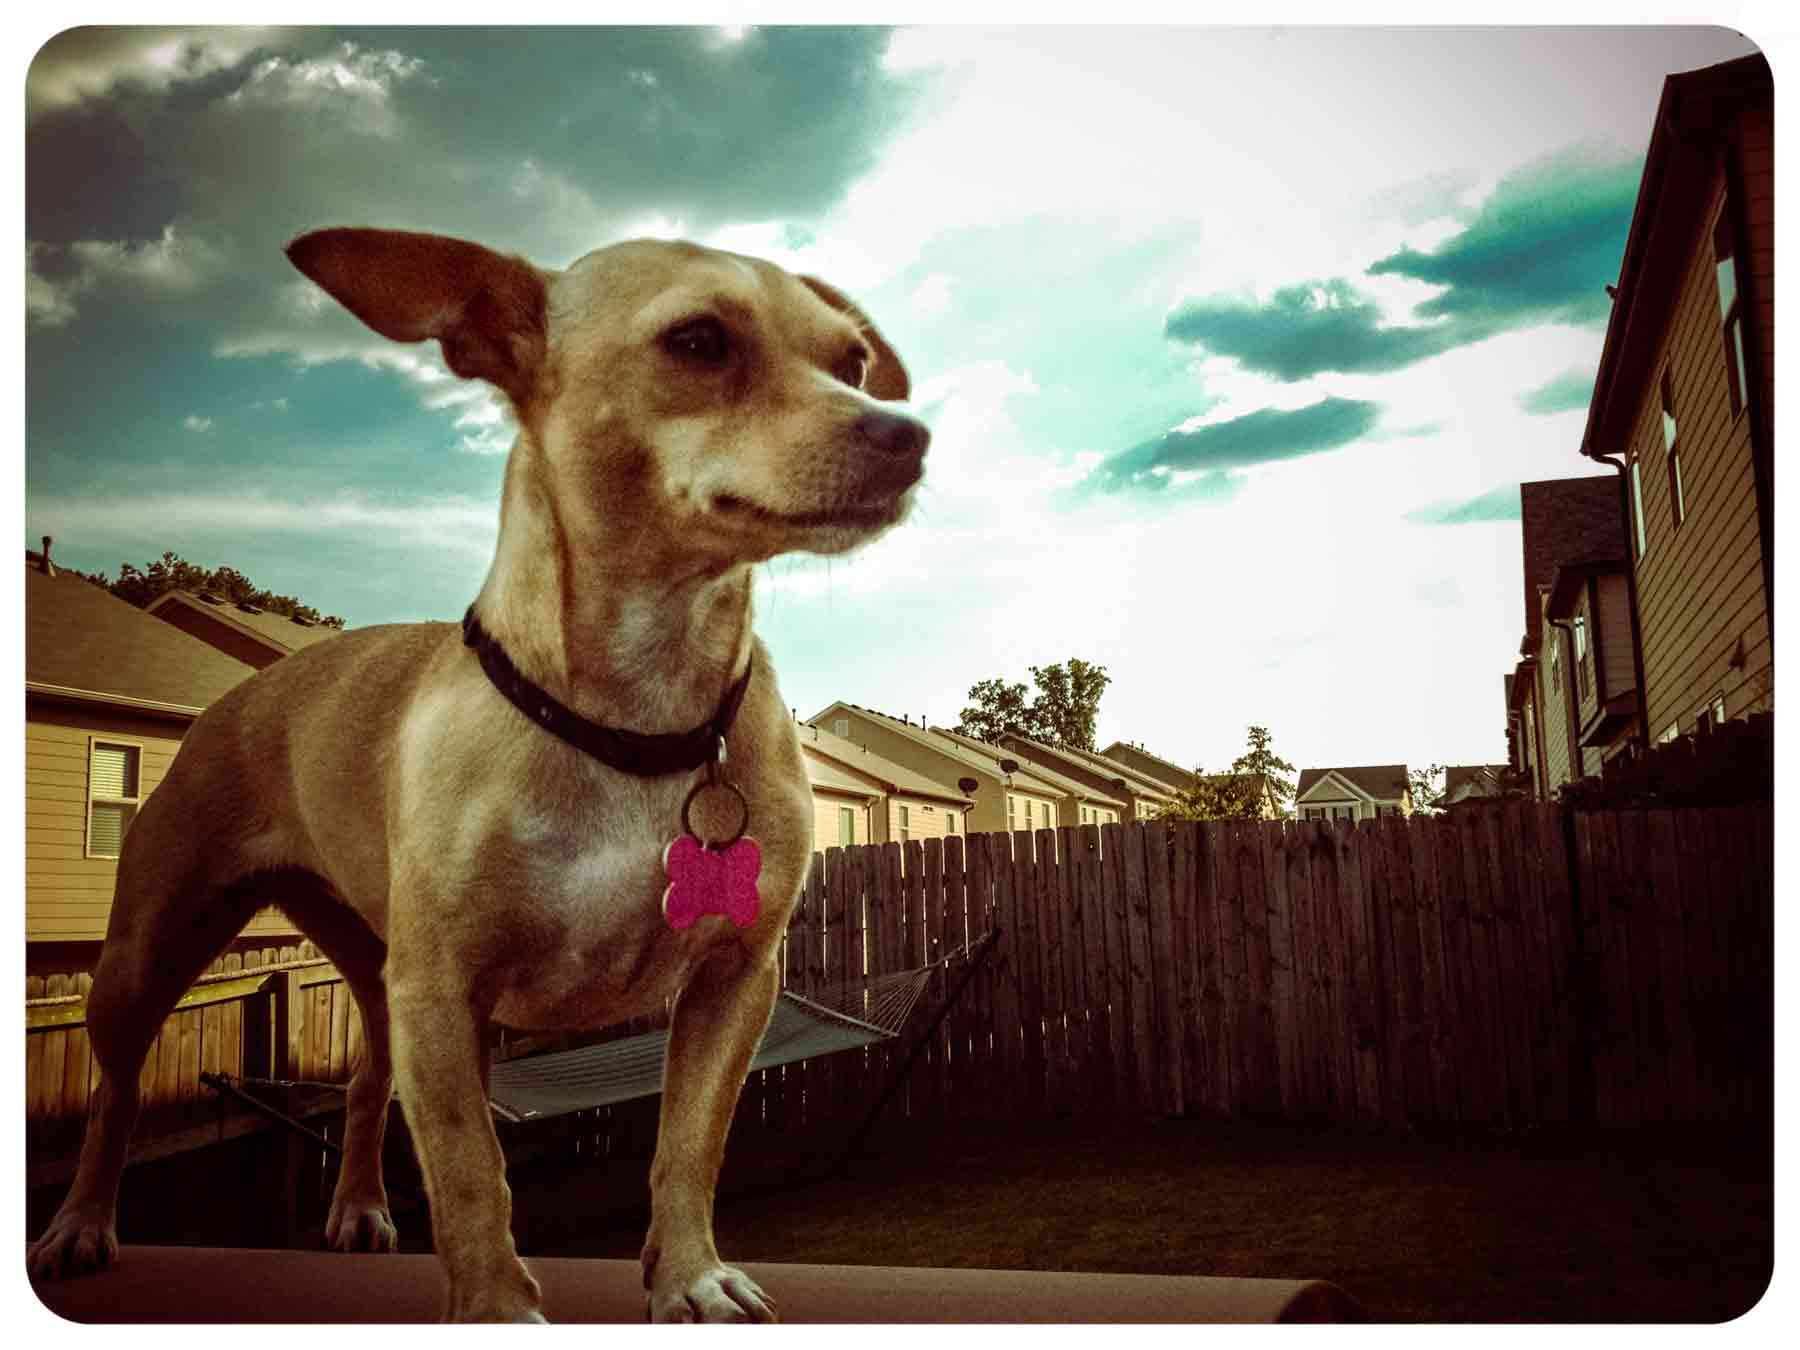 Mali the Chihuahua in suburbia USA